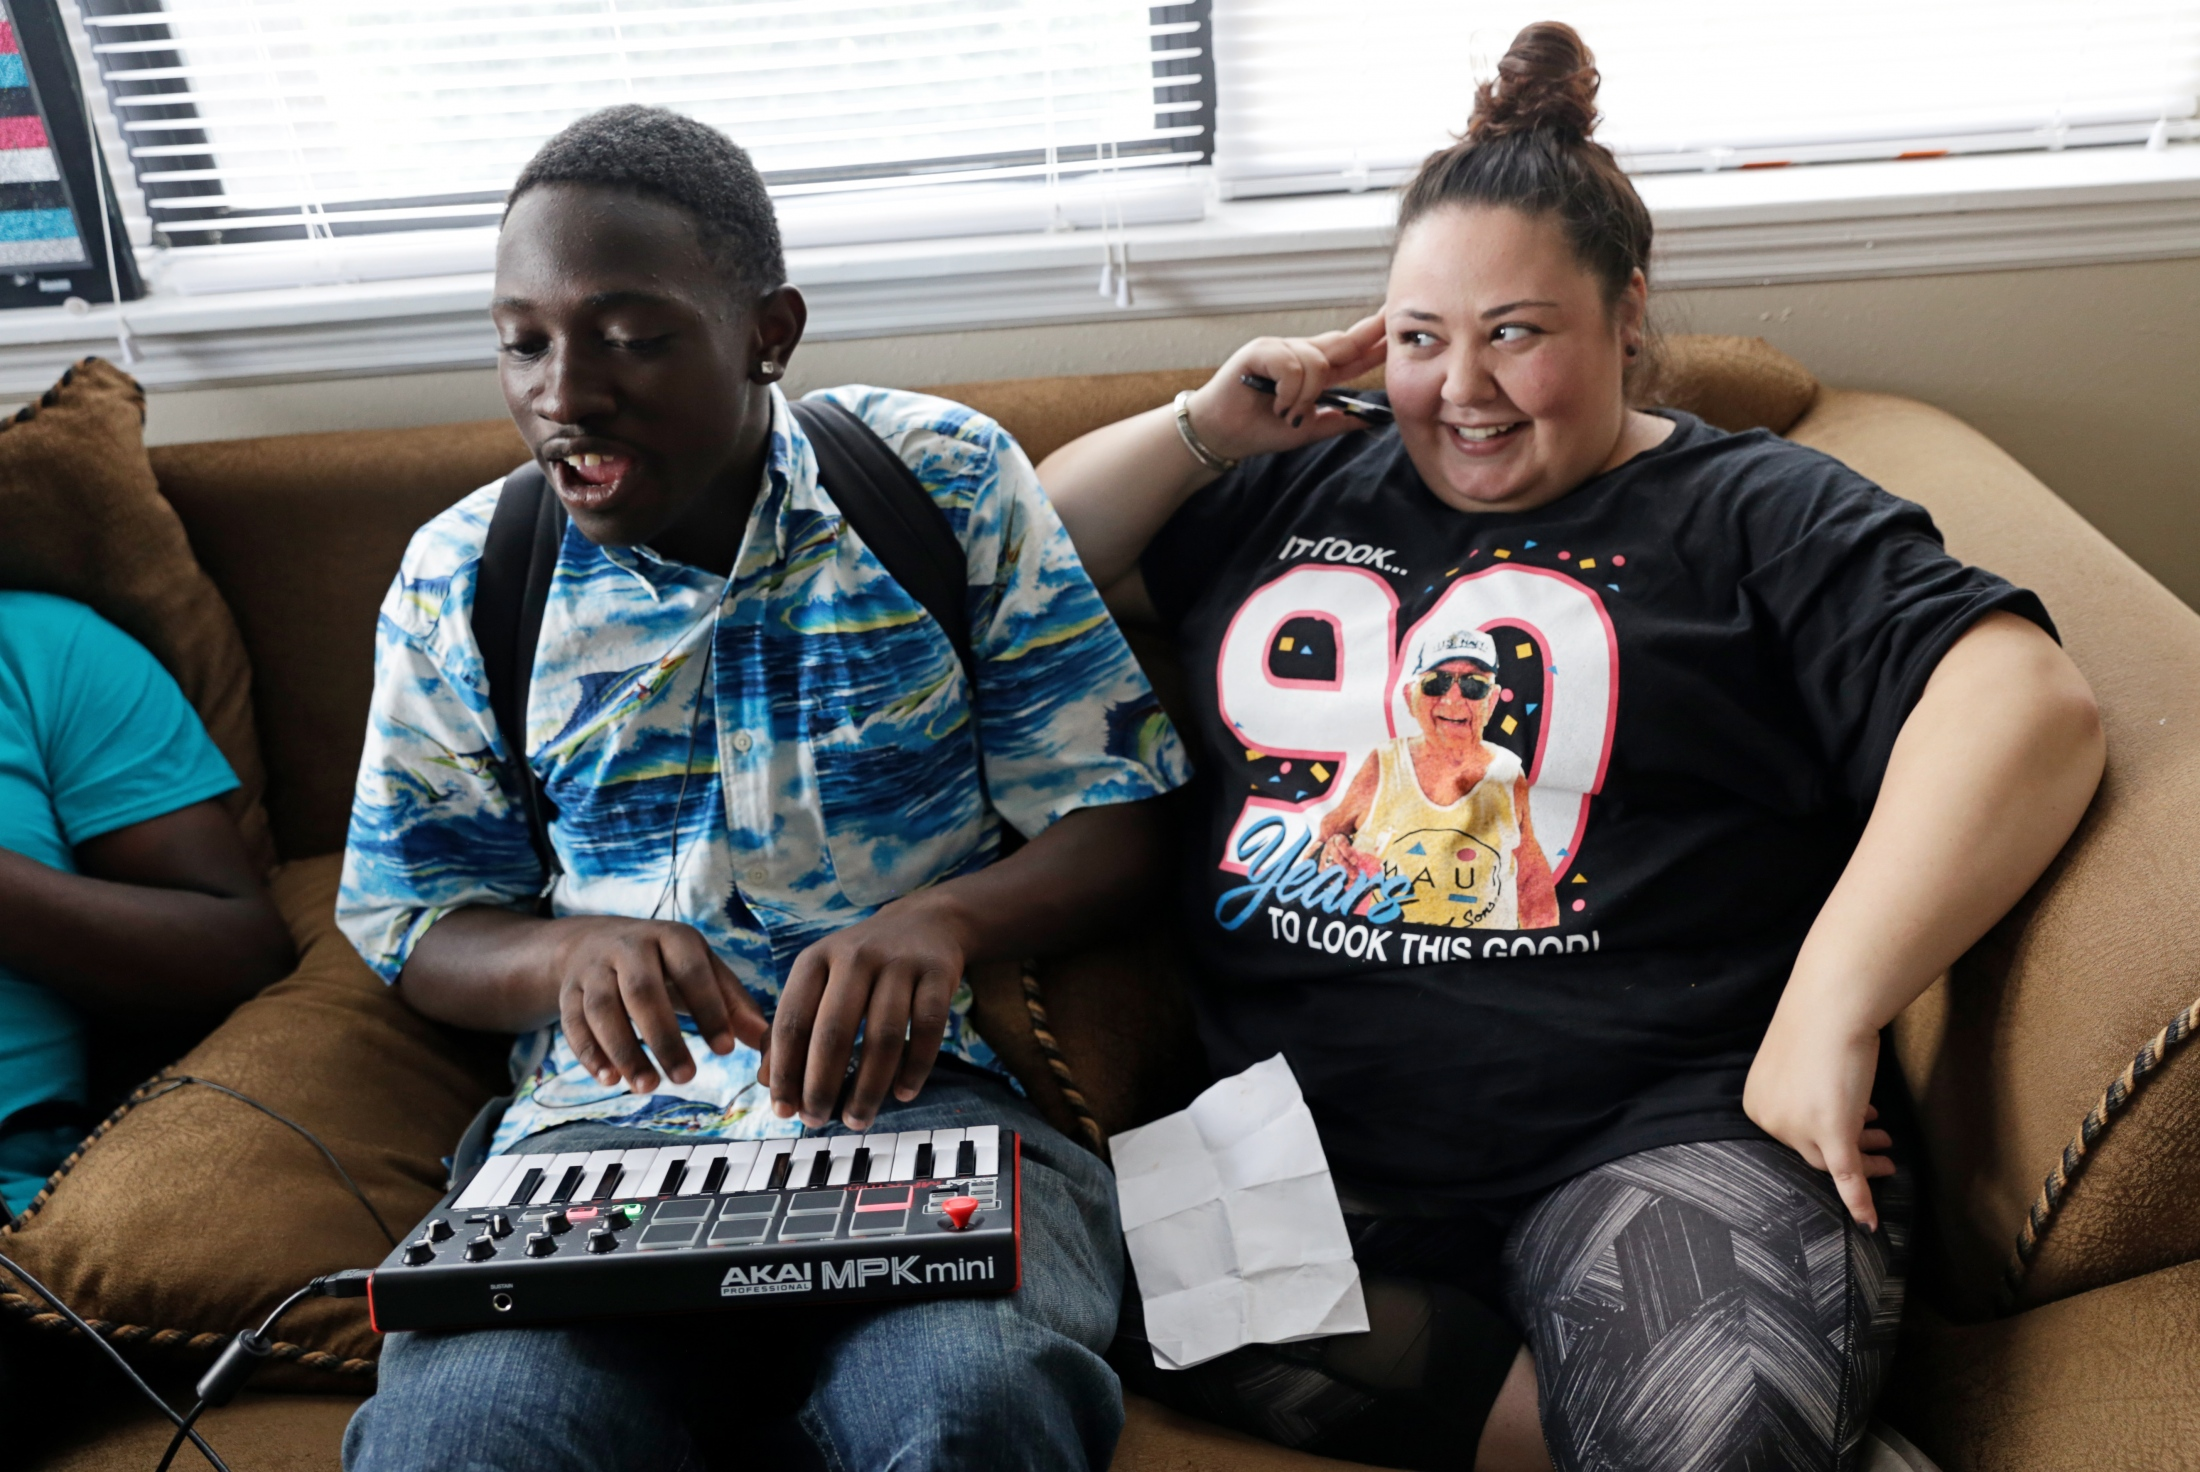 Ladarius Simmons, goofs around on a keyboard while Going Places caseworker Bri Tebbens watches.